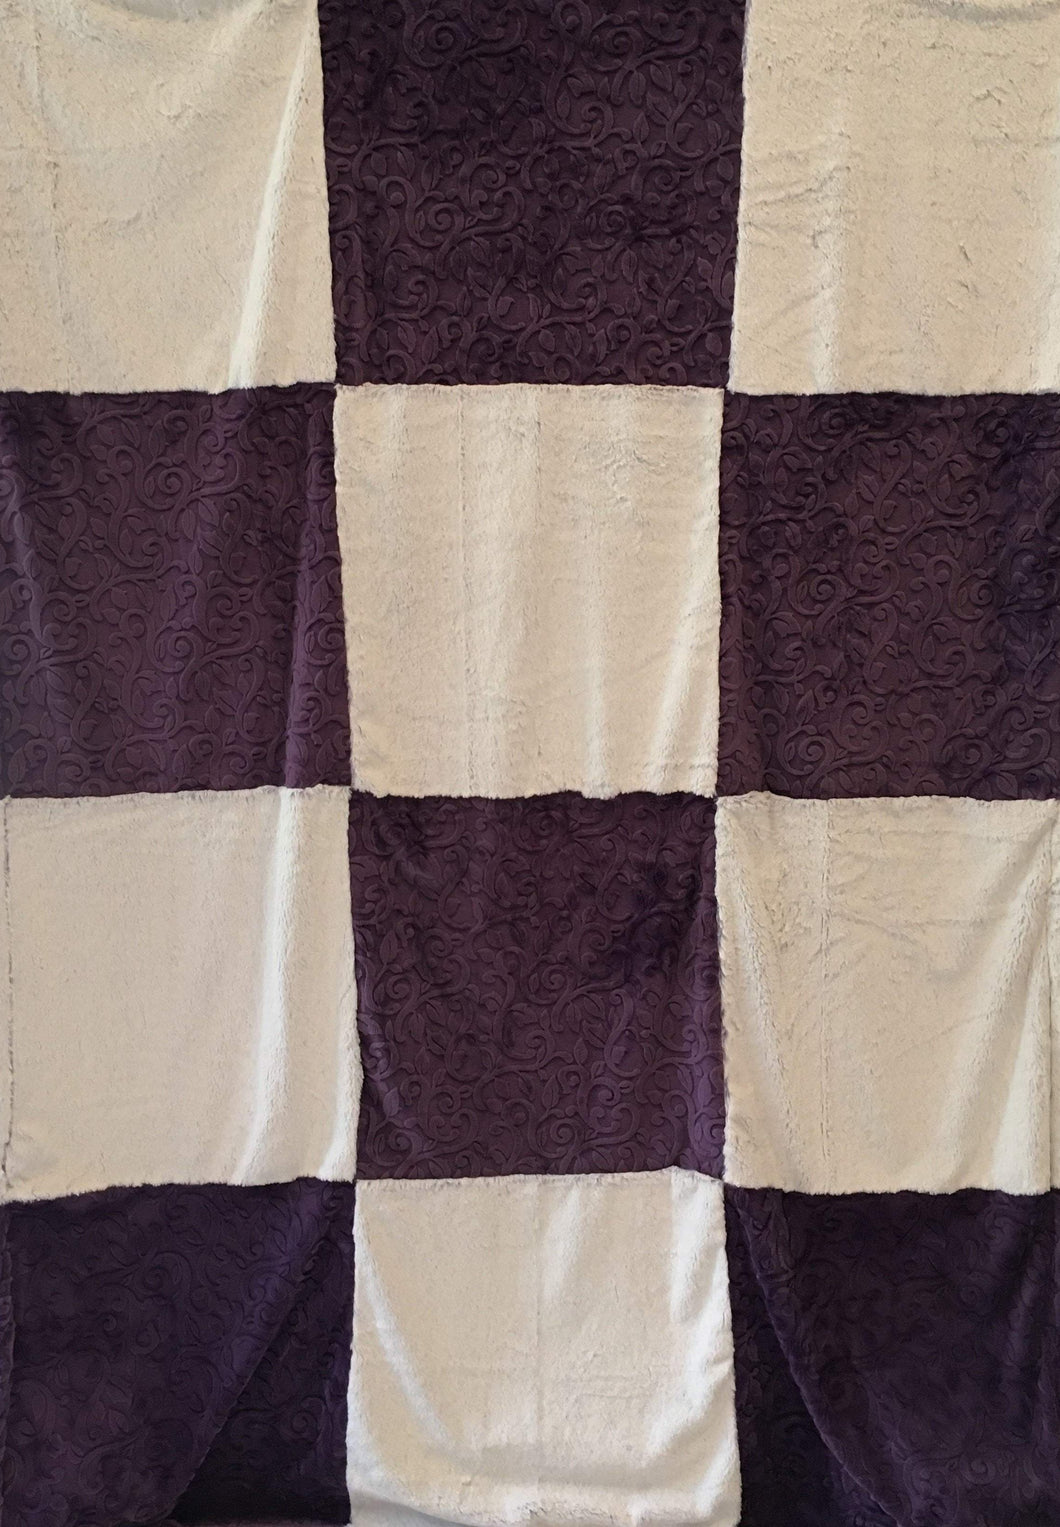 Patchwork Style Throw Blanket in Frost Iris, Embossed Vine in Violet on Embossed Vine in Violet